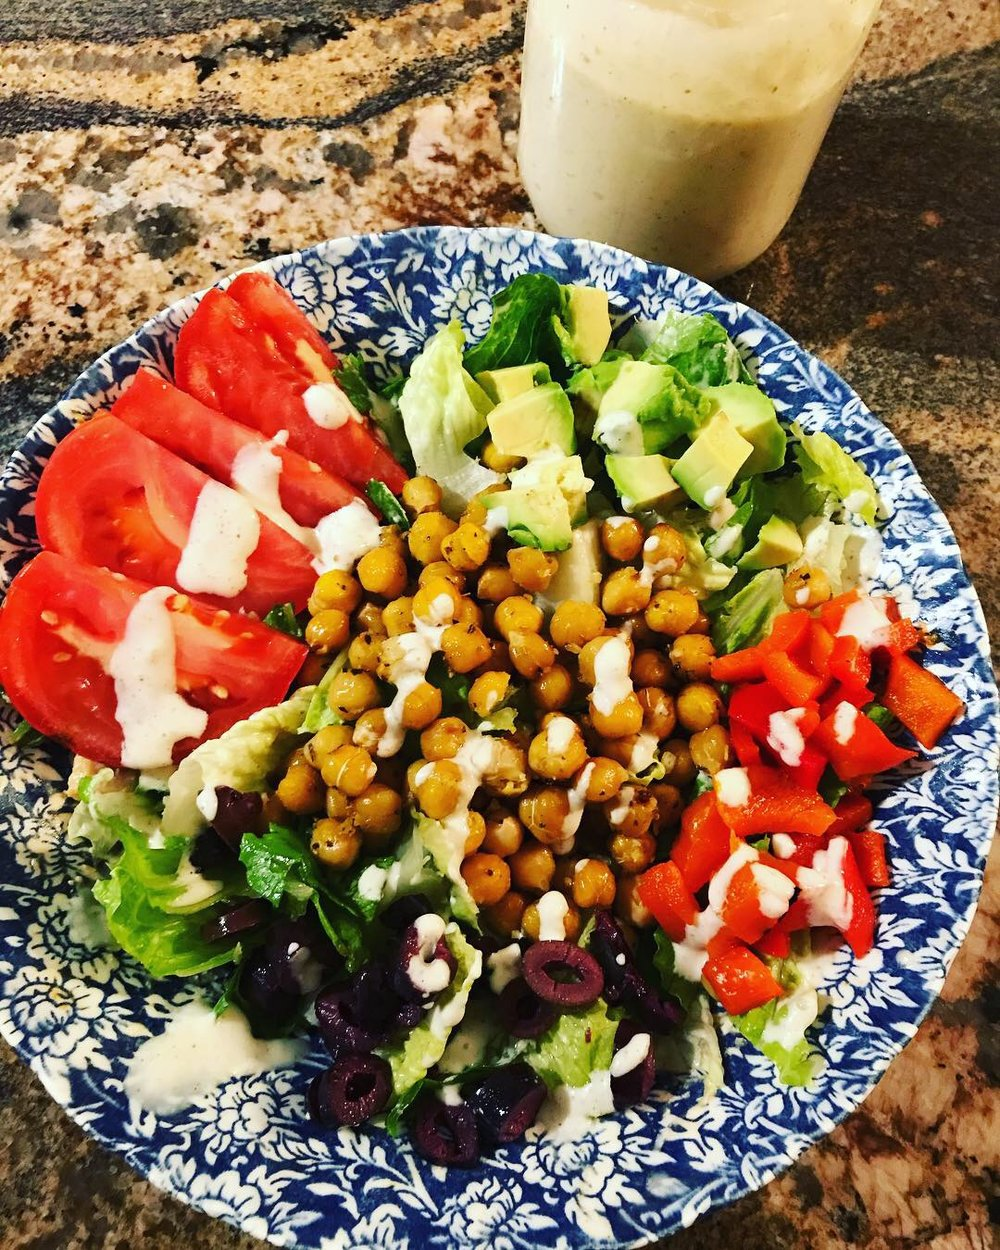 Here is an easy Greek Inspired Bowl that we made with our dressing.